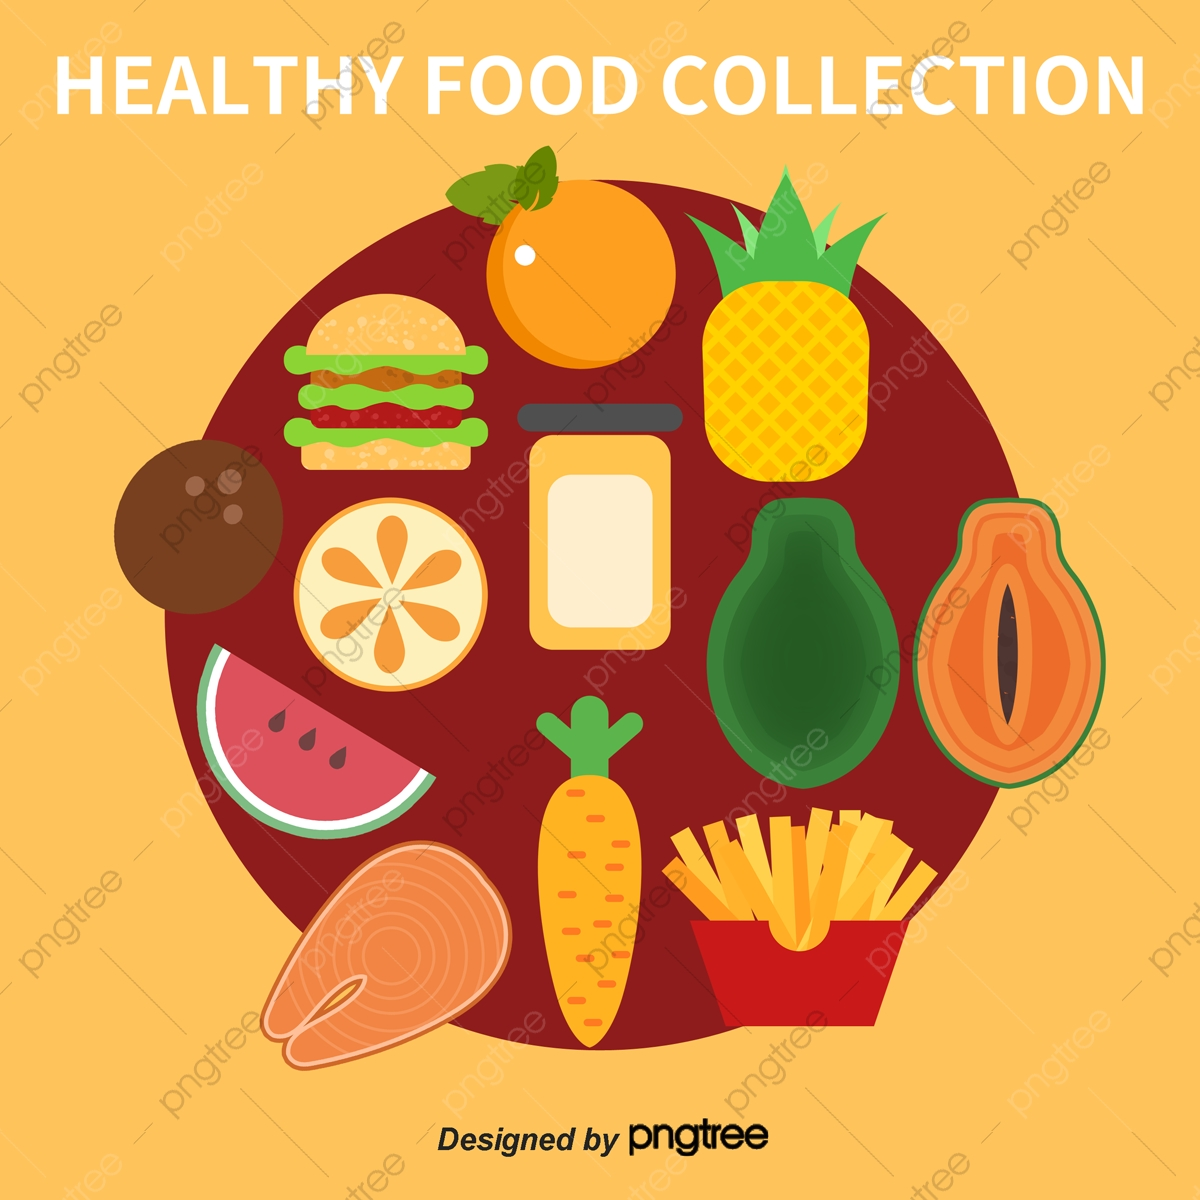 Vector Healthy Food Collection Bread Drink Watermelon Png Transparent Clipart Image And Psd File For Free Download